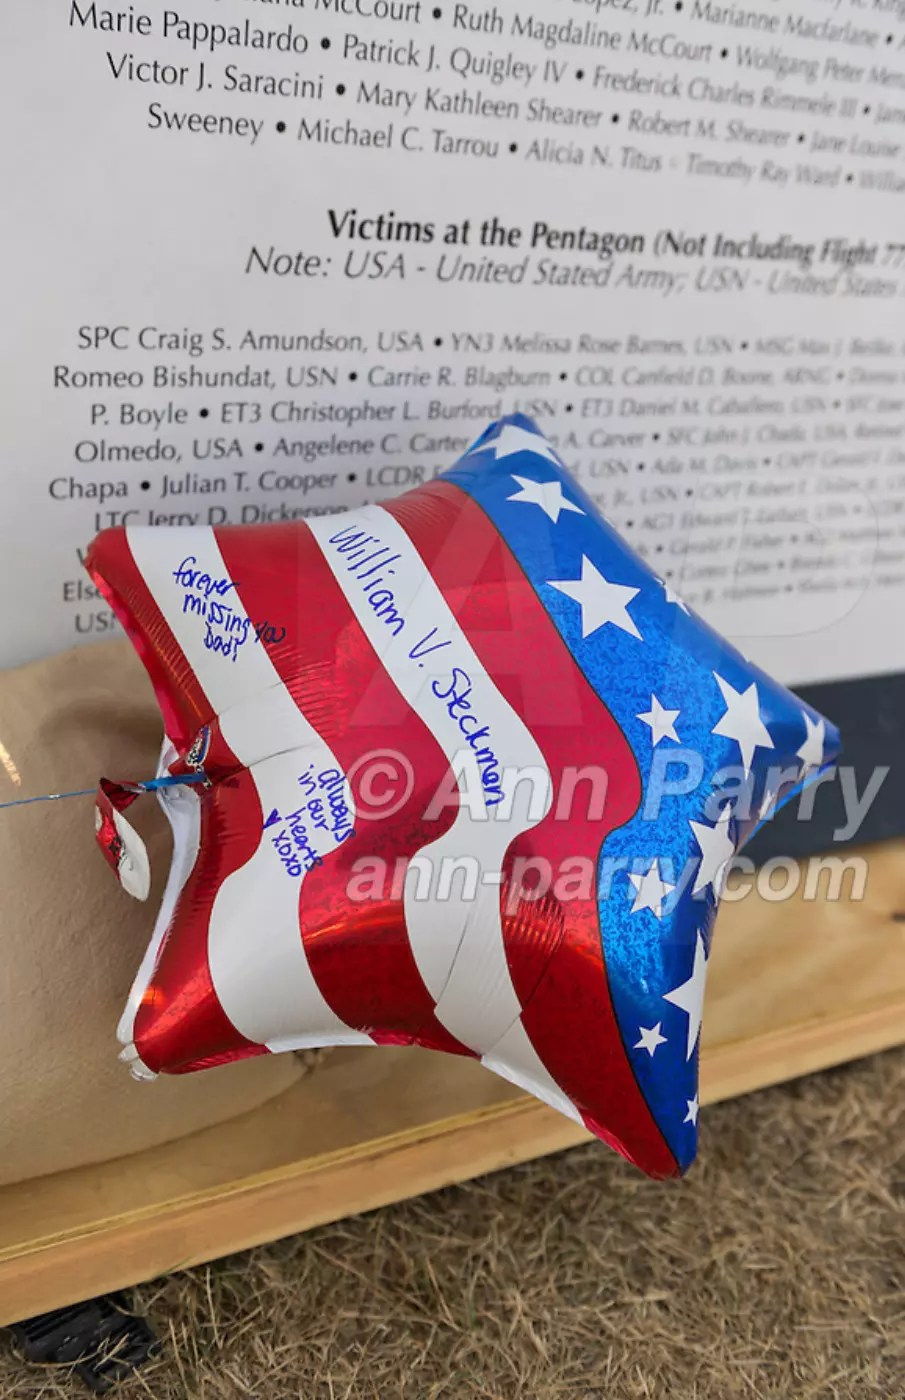 "East Meadow, NY, U.S. 11th Sept. 2013. Red, white, & blue balloon has messages written on it to William V. Steckman (Pop-Pop) of West Hempstead, who worked for NBC in North Tower of Twin Towers, and died 9/11 2001. The Global War on Terror ""Wall of Remembrance"" a traveling memorial on display in New York for the first time, was at Eisenhower Park on the 12th Anniversary of the terrorist attacks of 9/11."